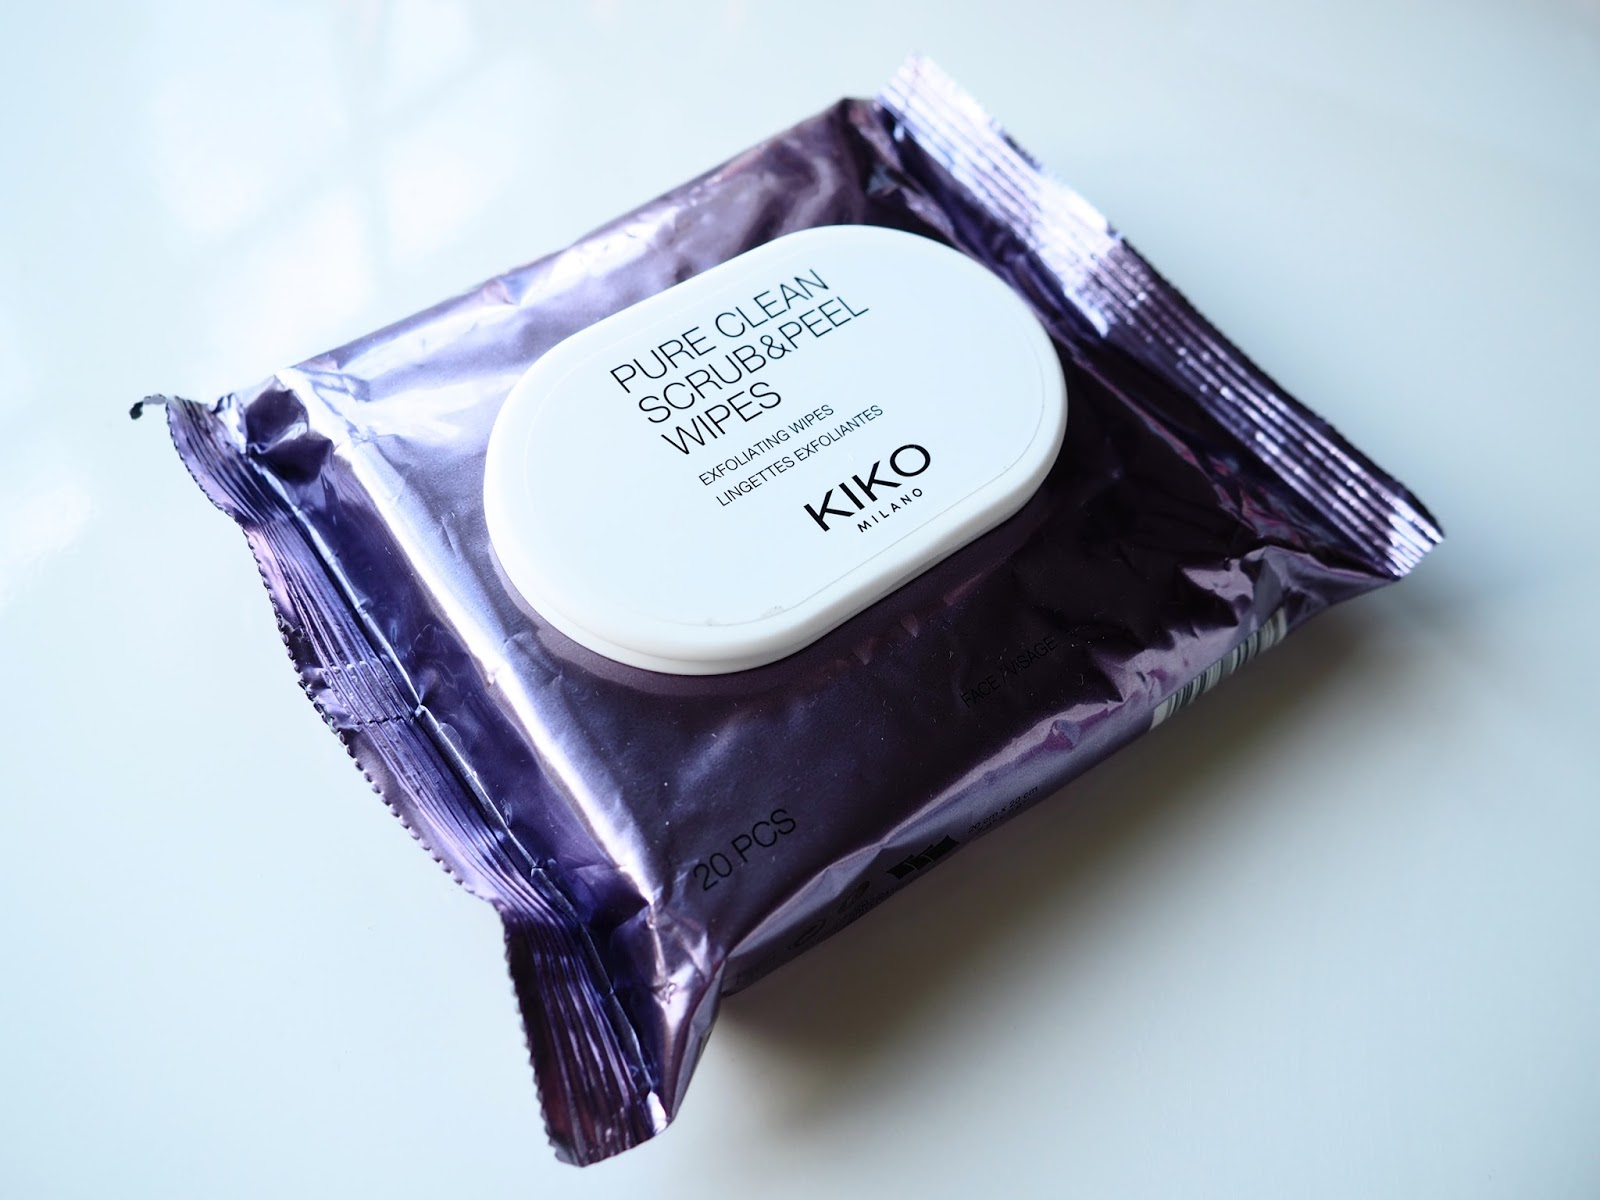 It's Cultured Kiko Haul Kiko Pure Clean Scrub and Peel Exfoliating Wipes